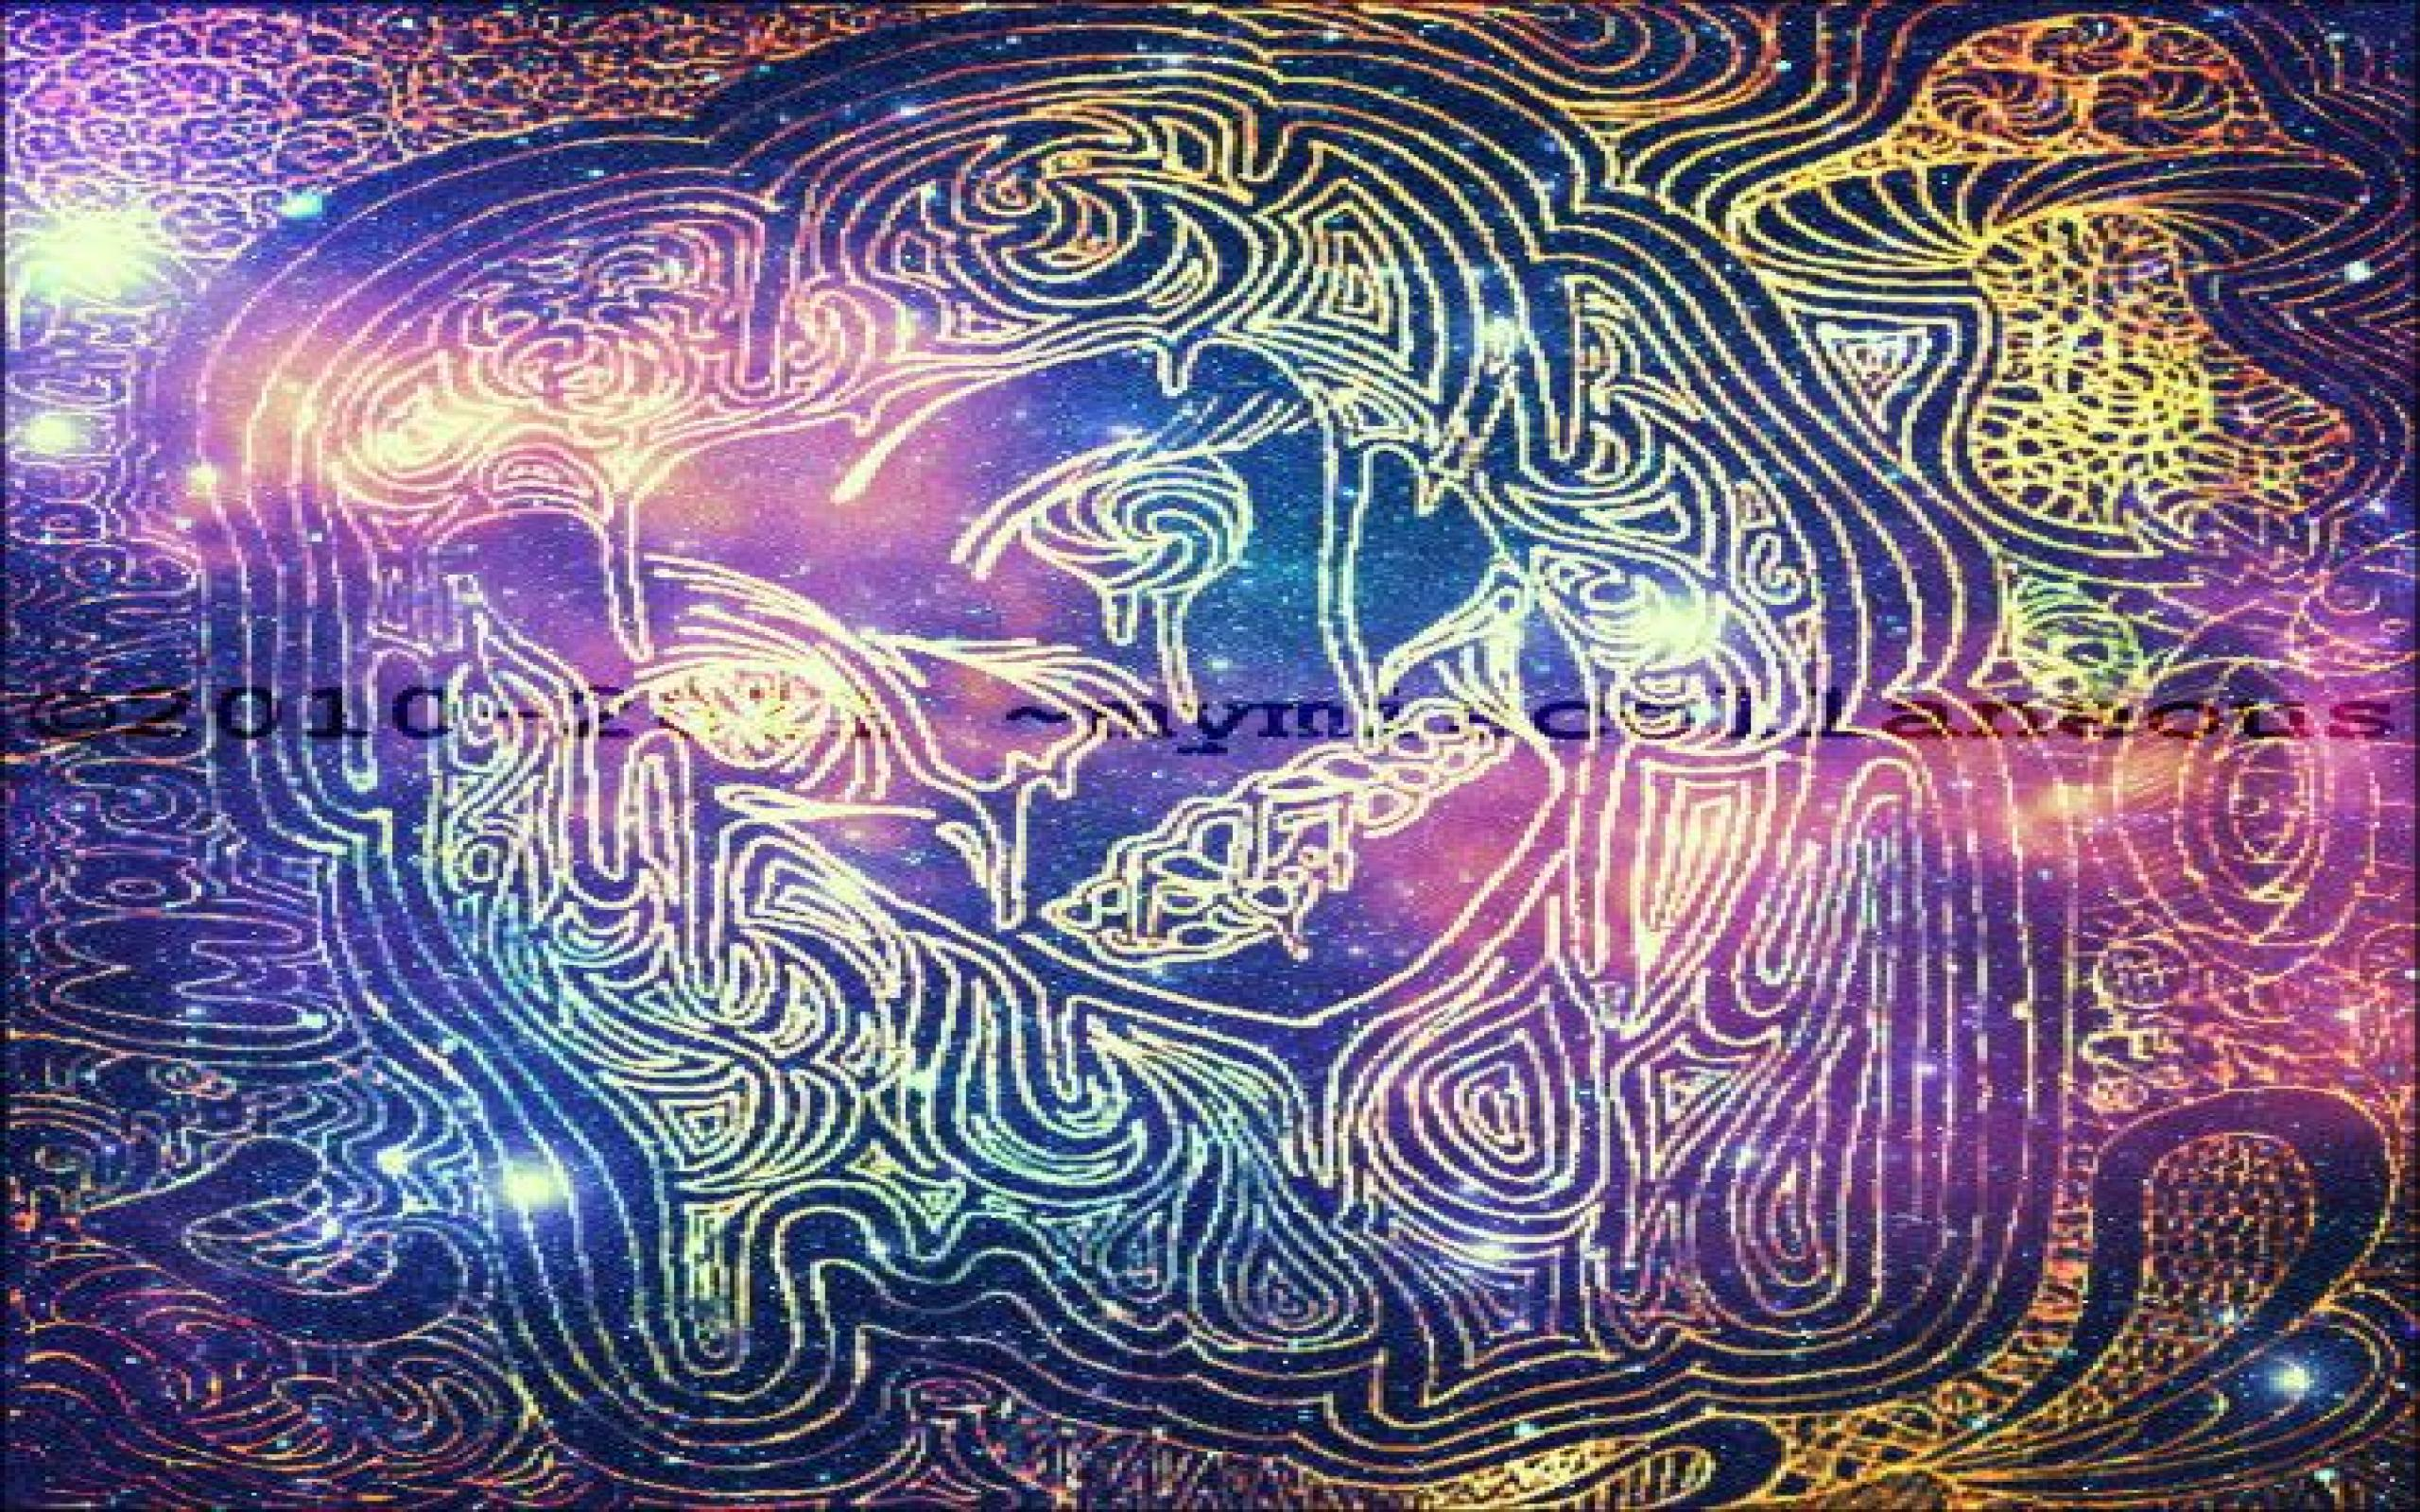 1680x1050 Wallpapers HD Psychedelic